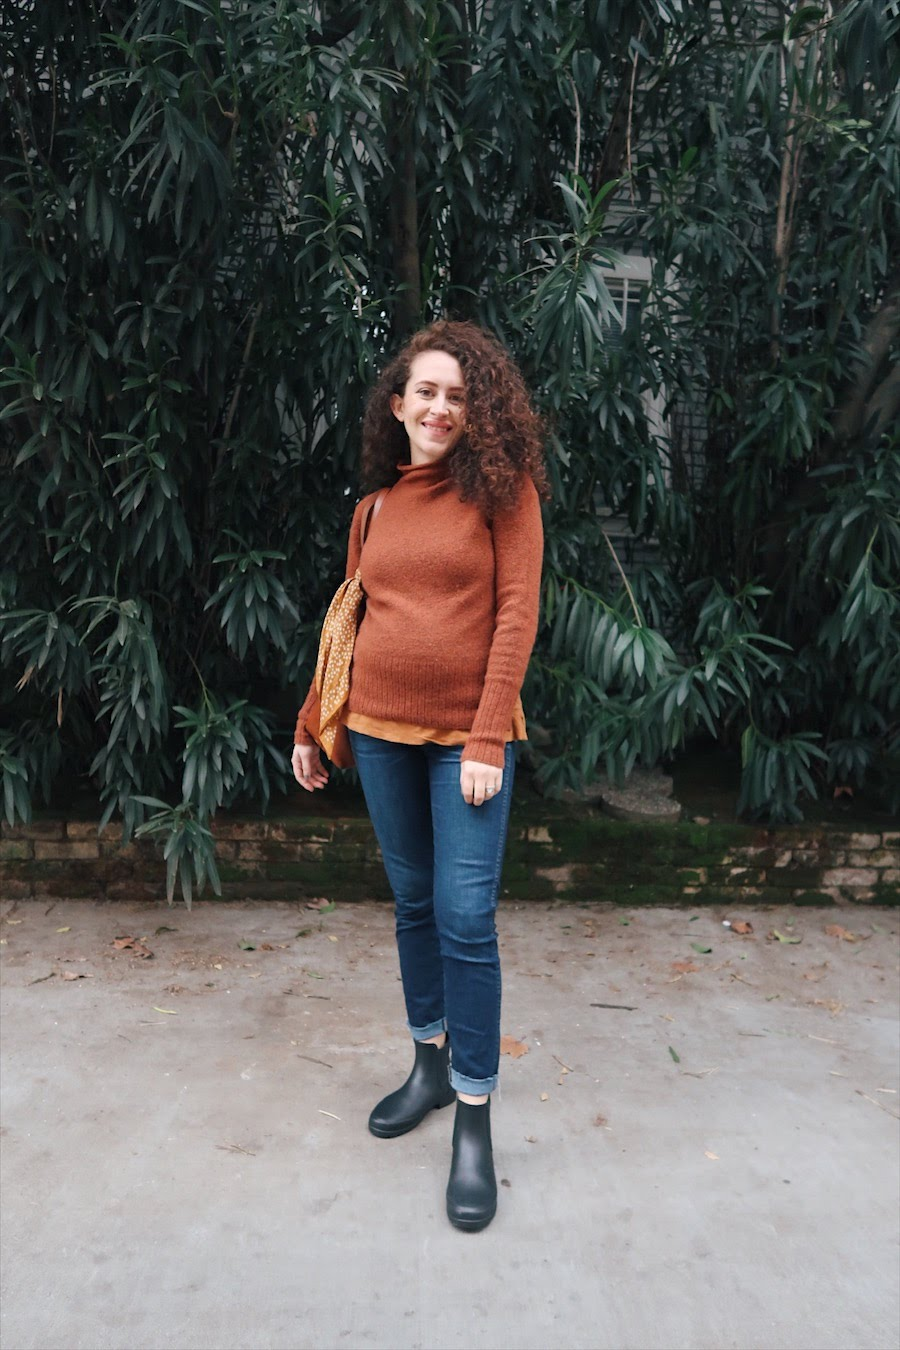 winter 10x10 challenge while pregnant, day 1: rust orange sweater, dark wash jeans, and chelsea rain boots